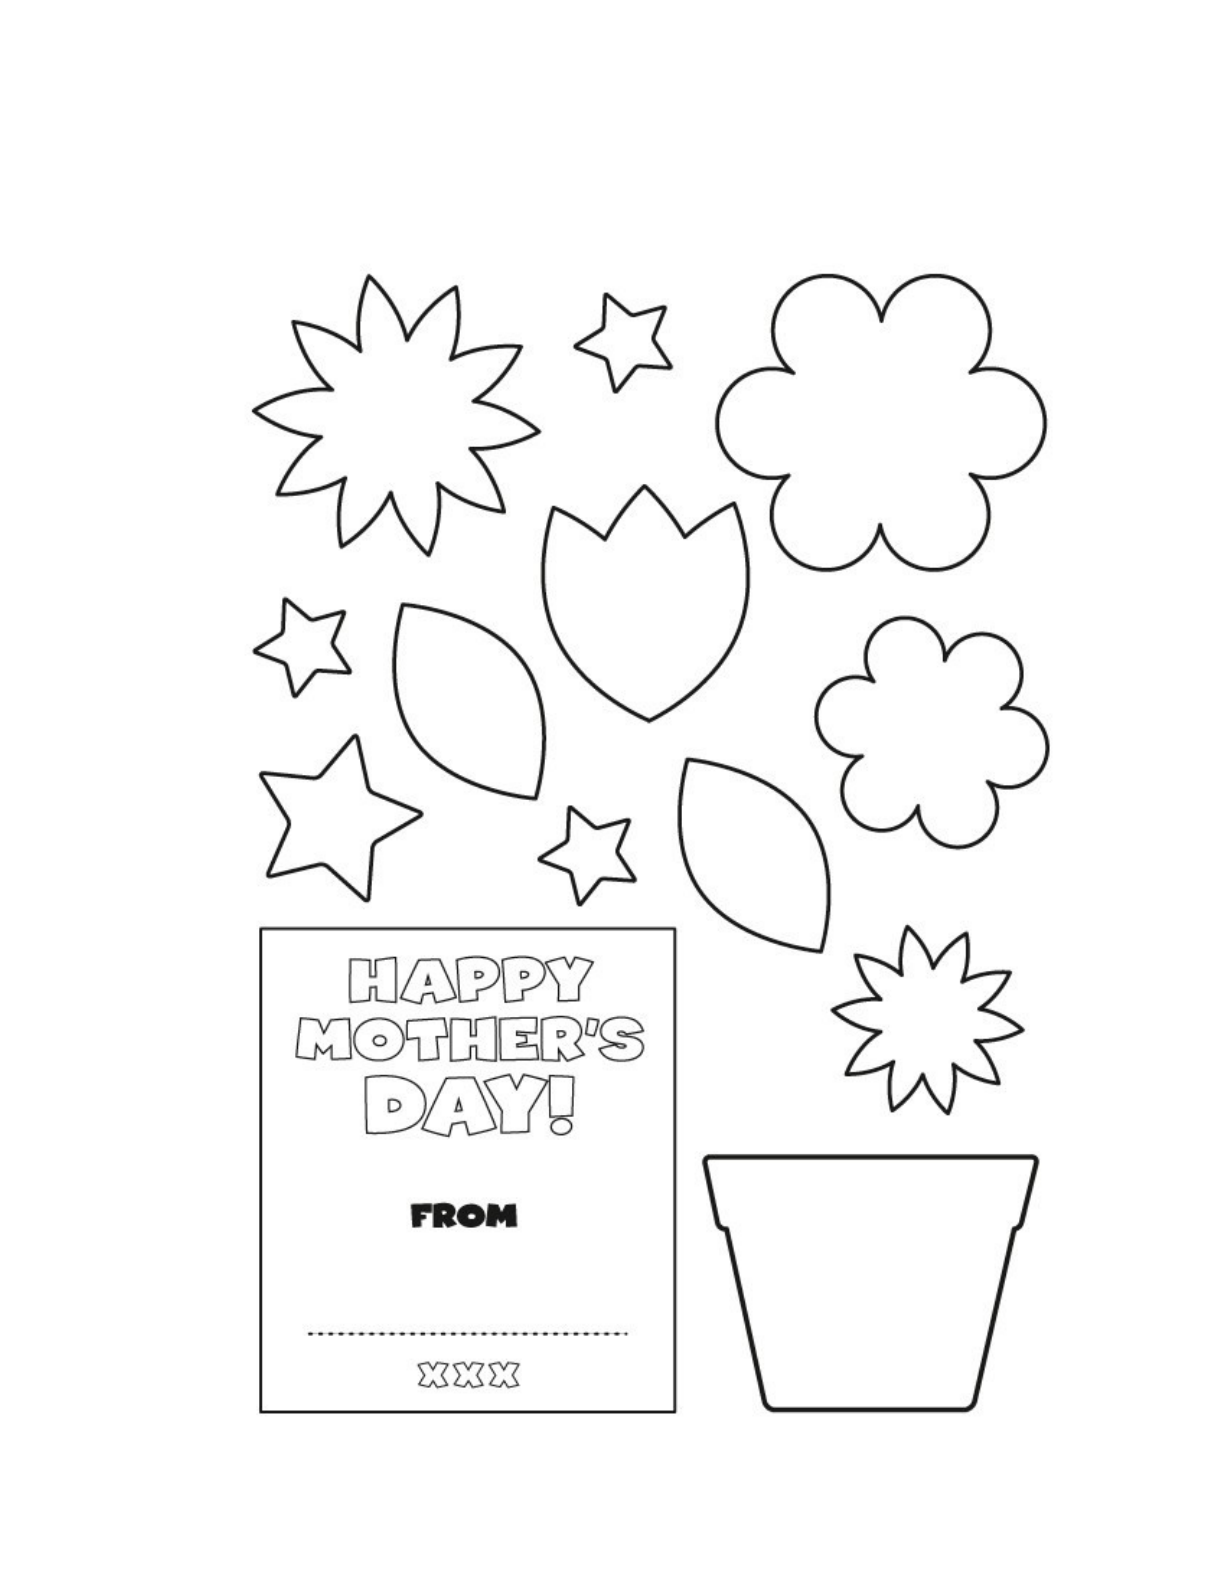 Mothers Day Flower Pot Card Template Free Download - Free mother's day card templates